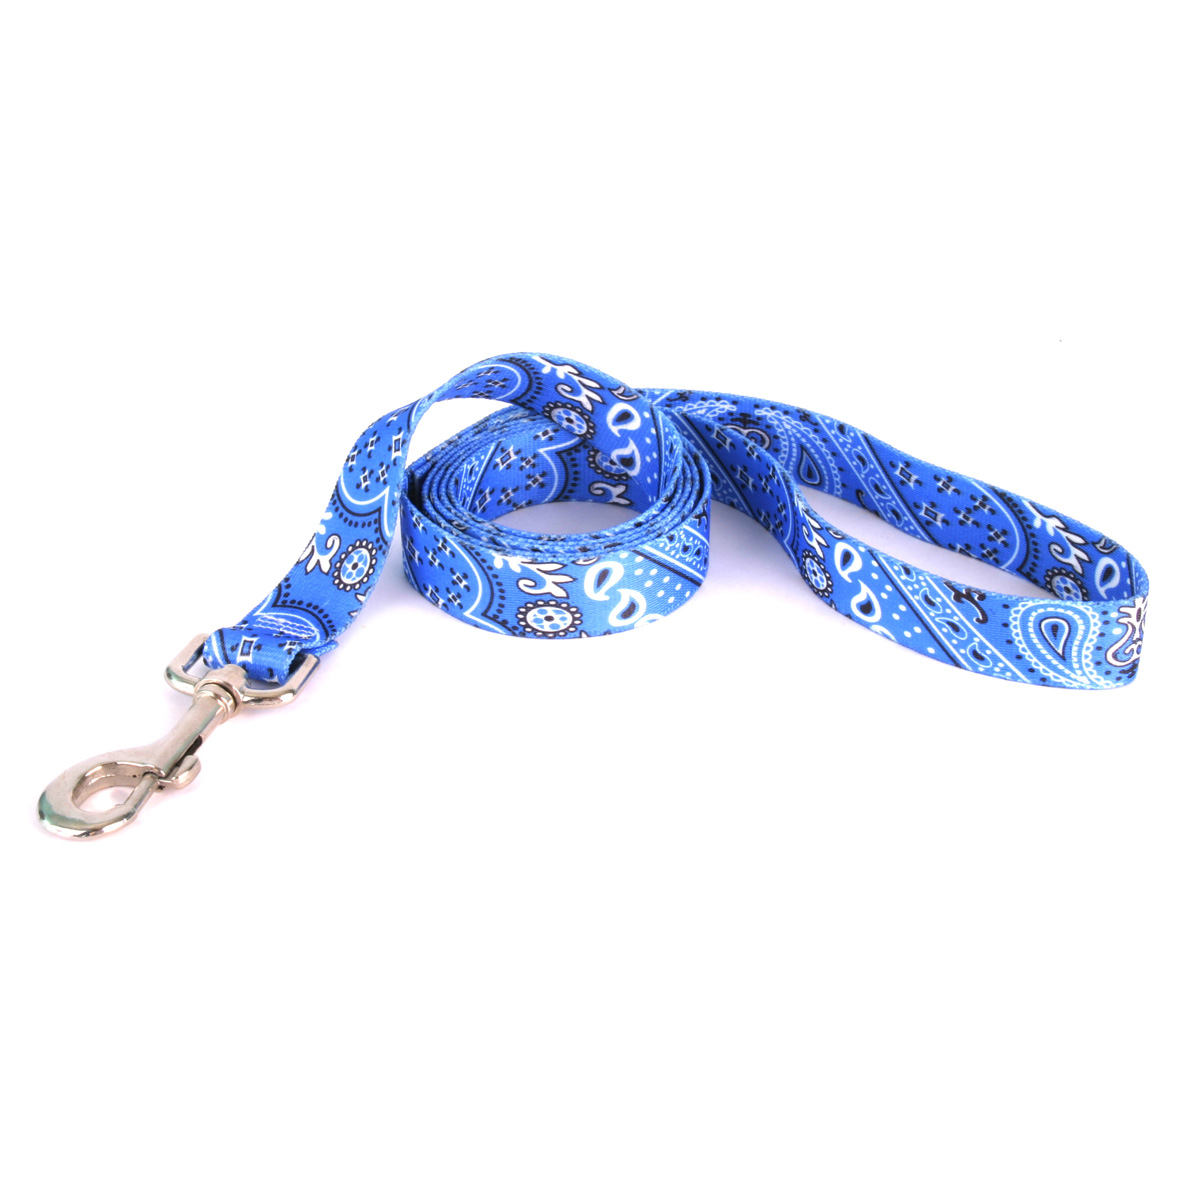 Bandana Blue Lead